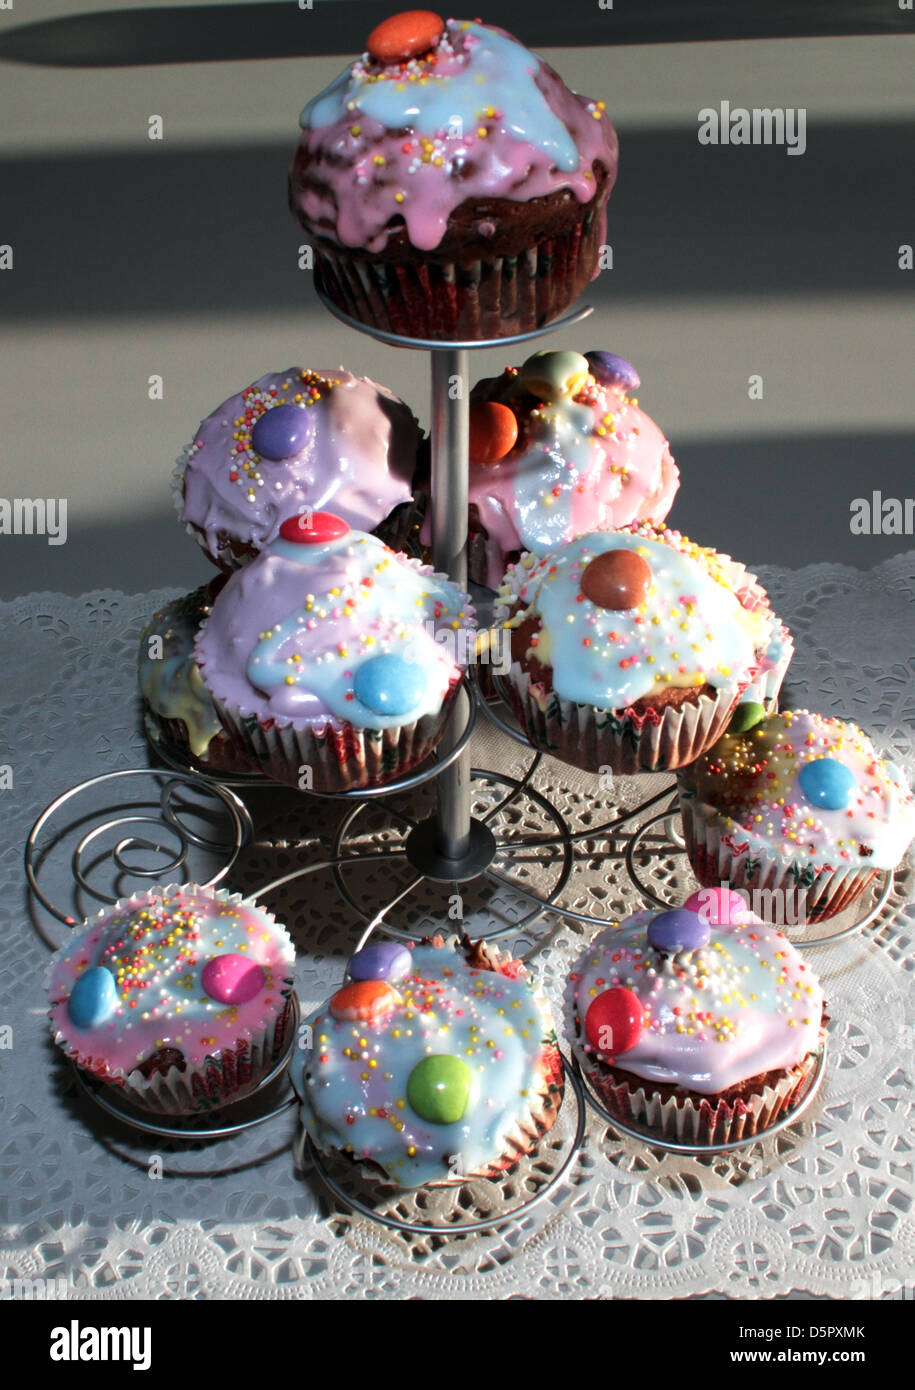 Cupcakes On A Stand Stock Photo 55208291 Alamy